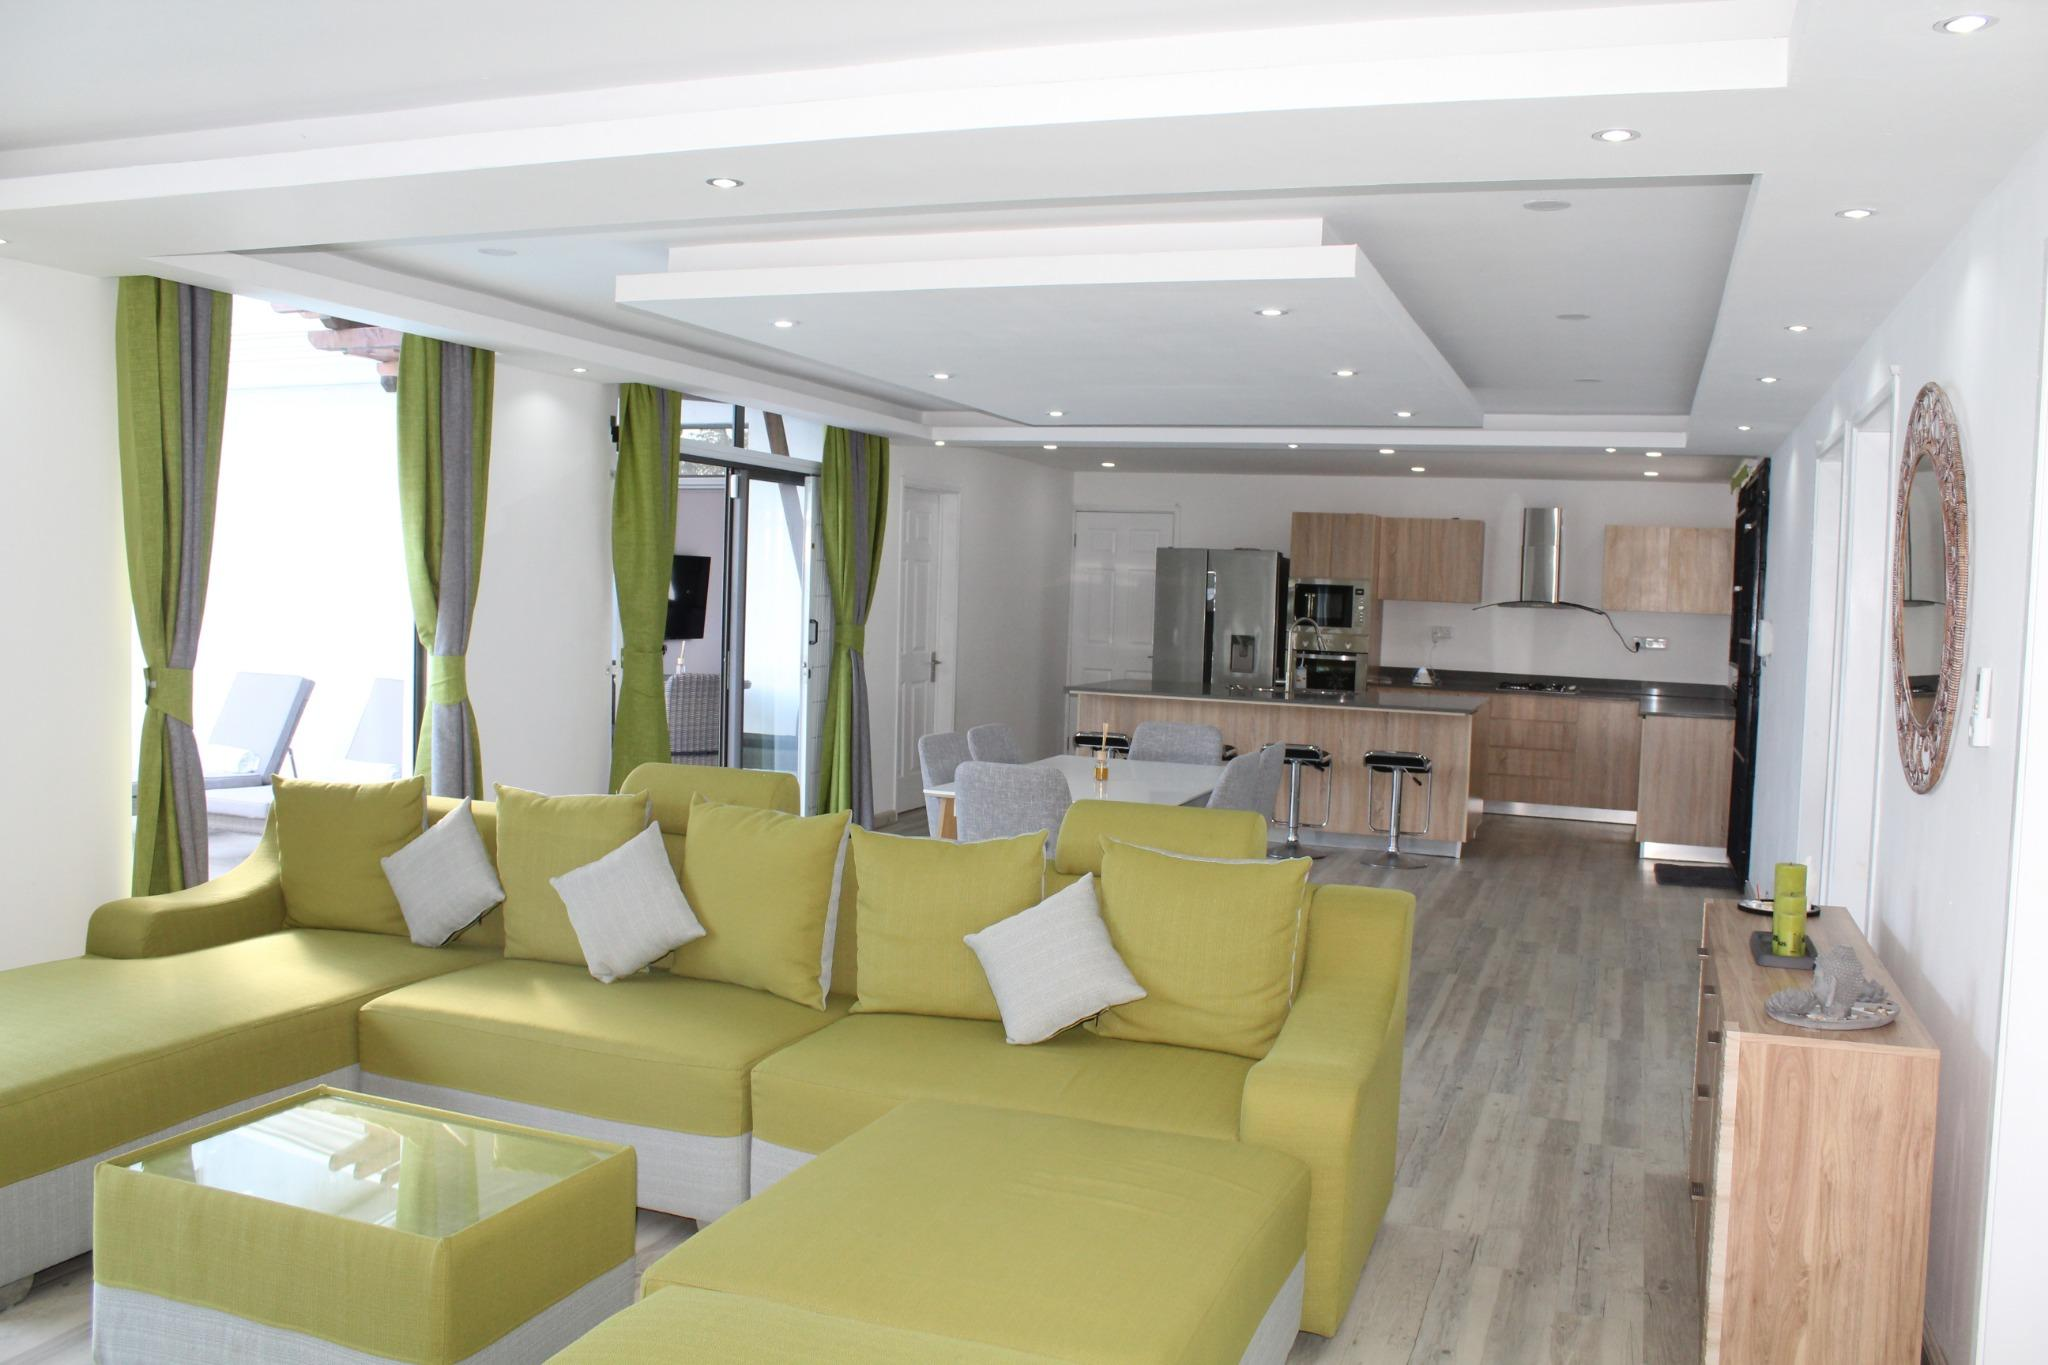 TO RENT – Magnificent contemporary single storey house of 146 m2 fully furnished and equipped on a plot of land of 100 toises situated in a residential area in Balaclava.